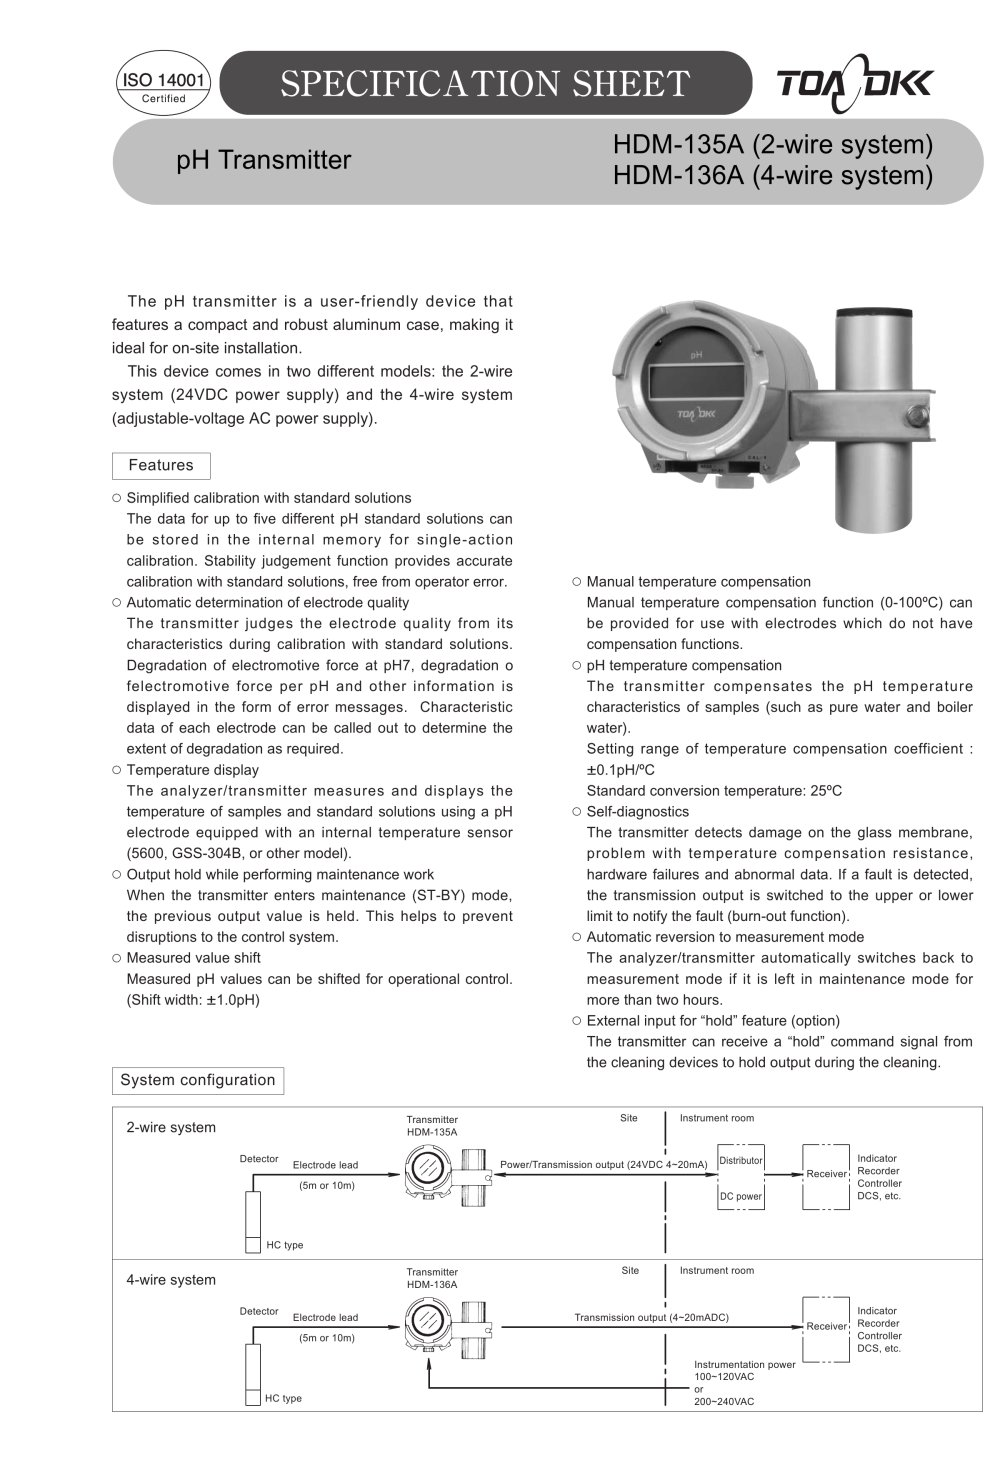 HDM-135A (2-wire system) HDM-136A (4-wire system) - DKK-TOA - PDF ...